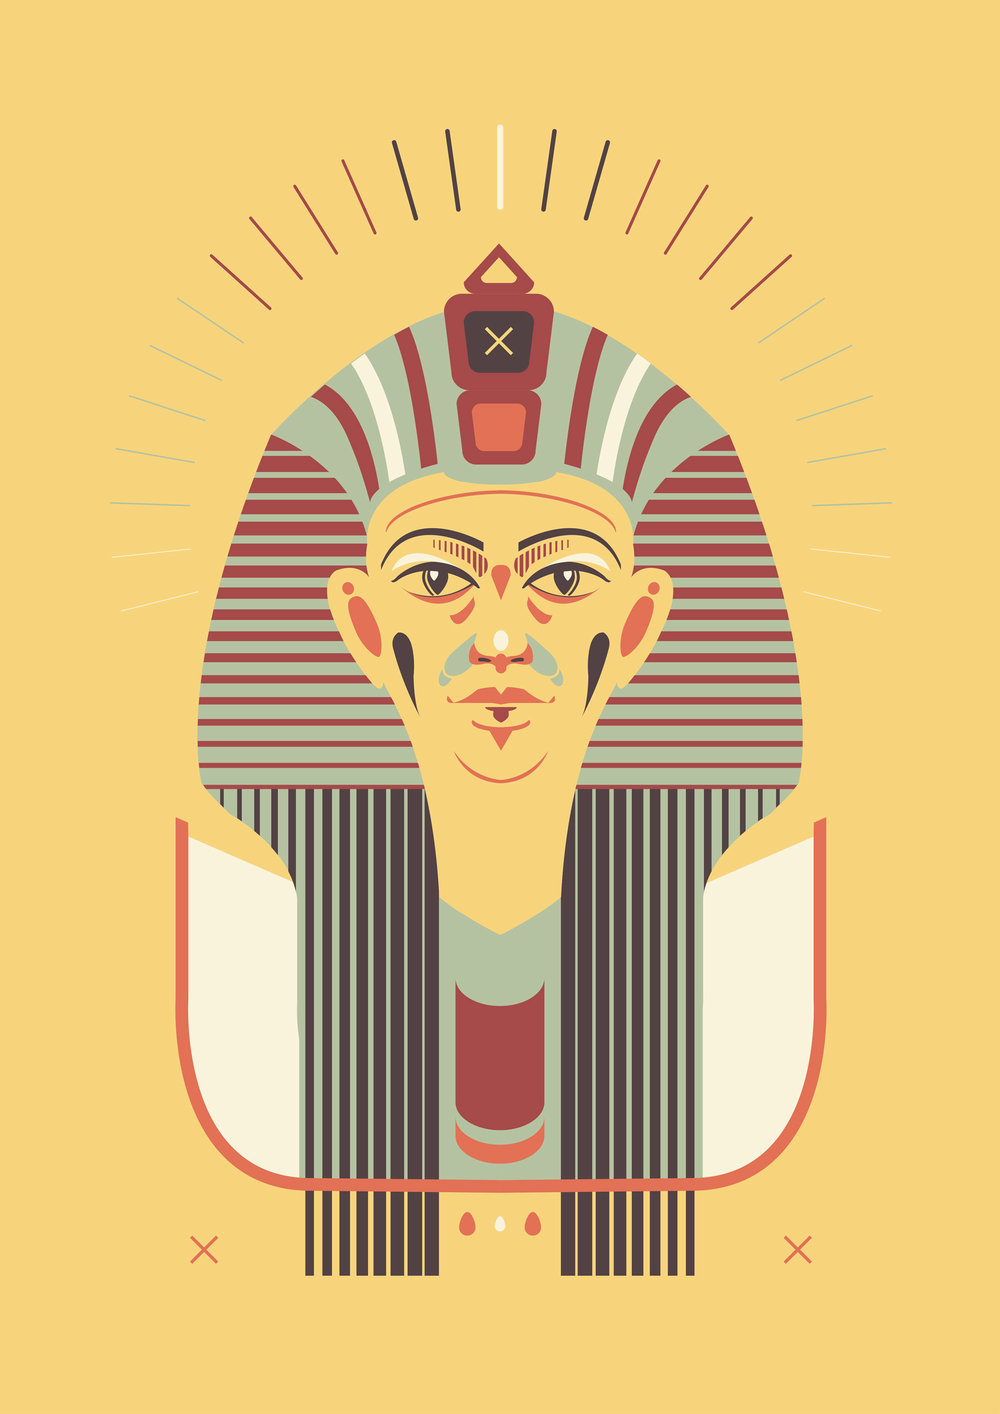 tutenchamun_egyptian_god_illustration_vector_phist.jpg